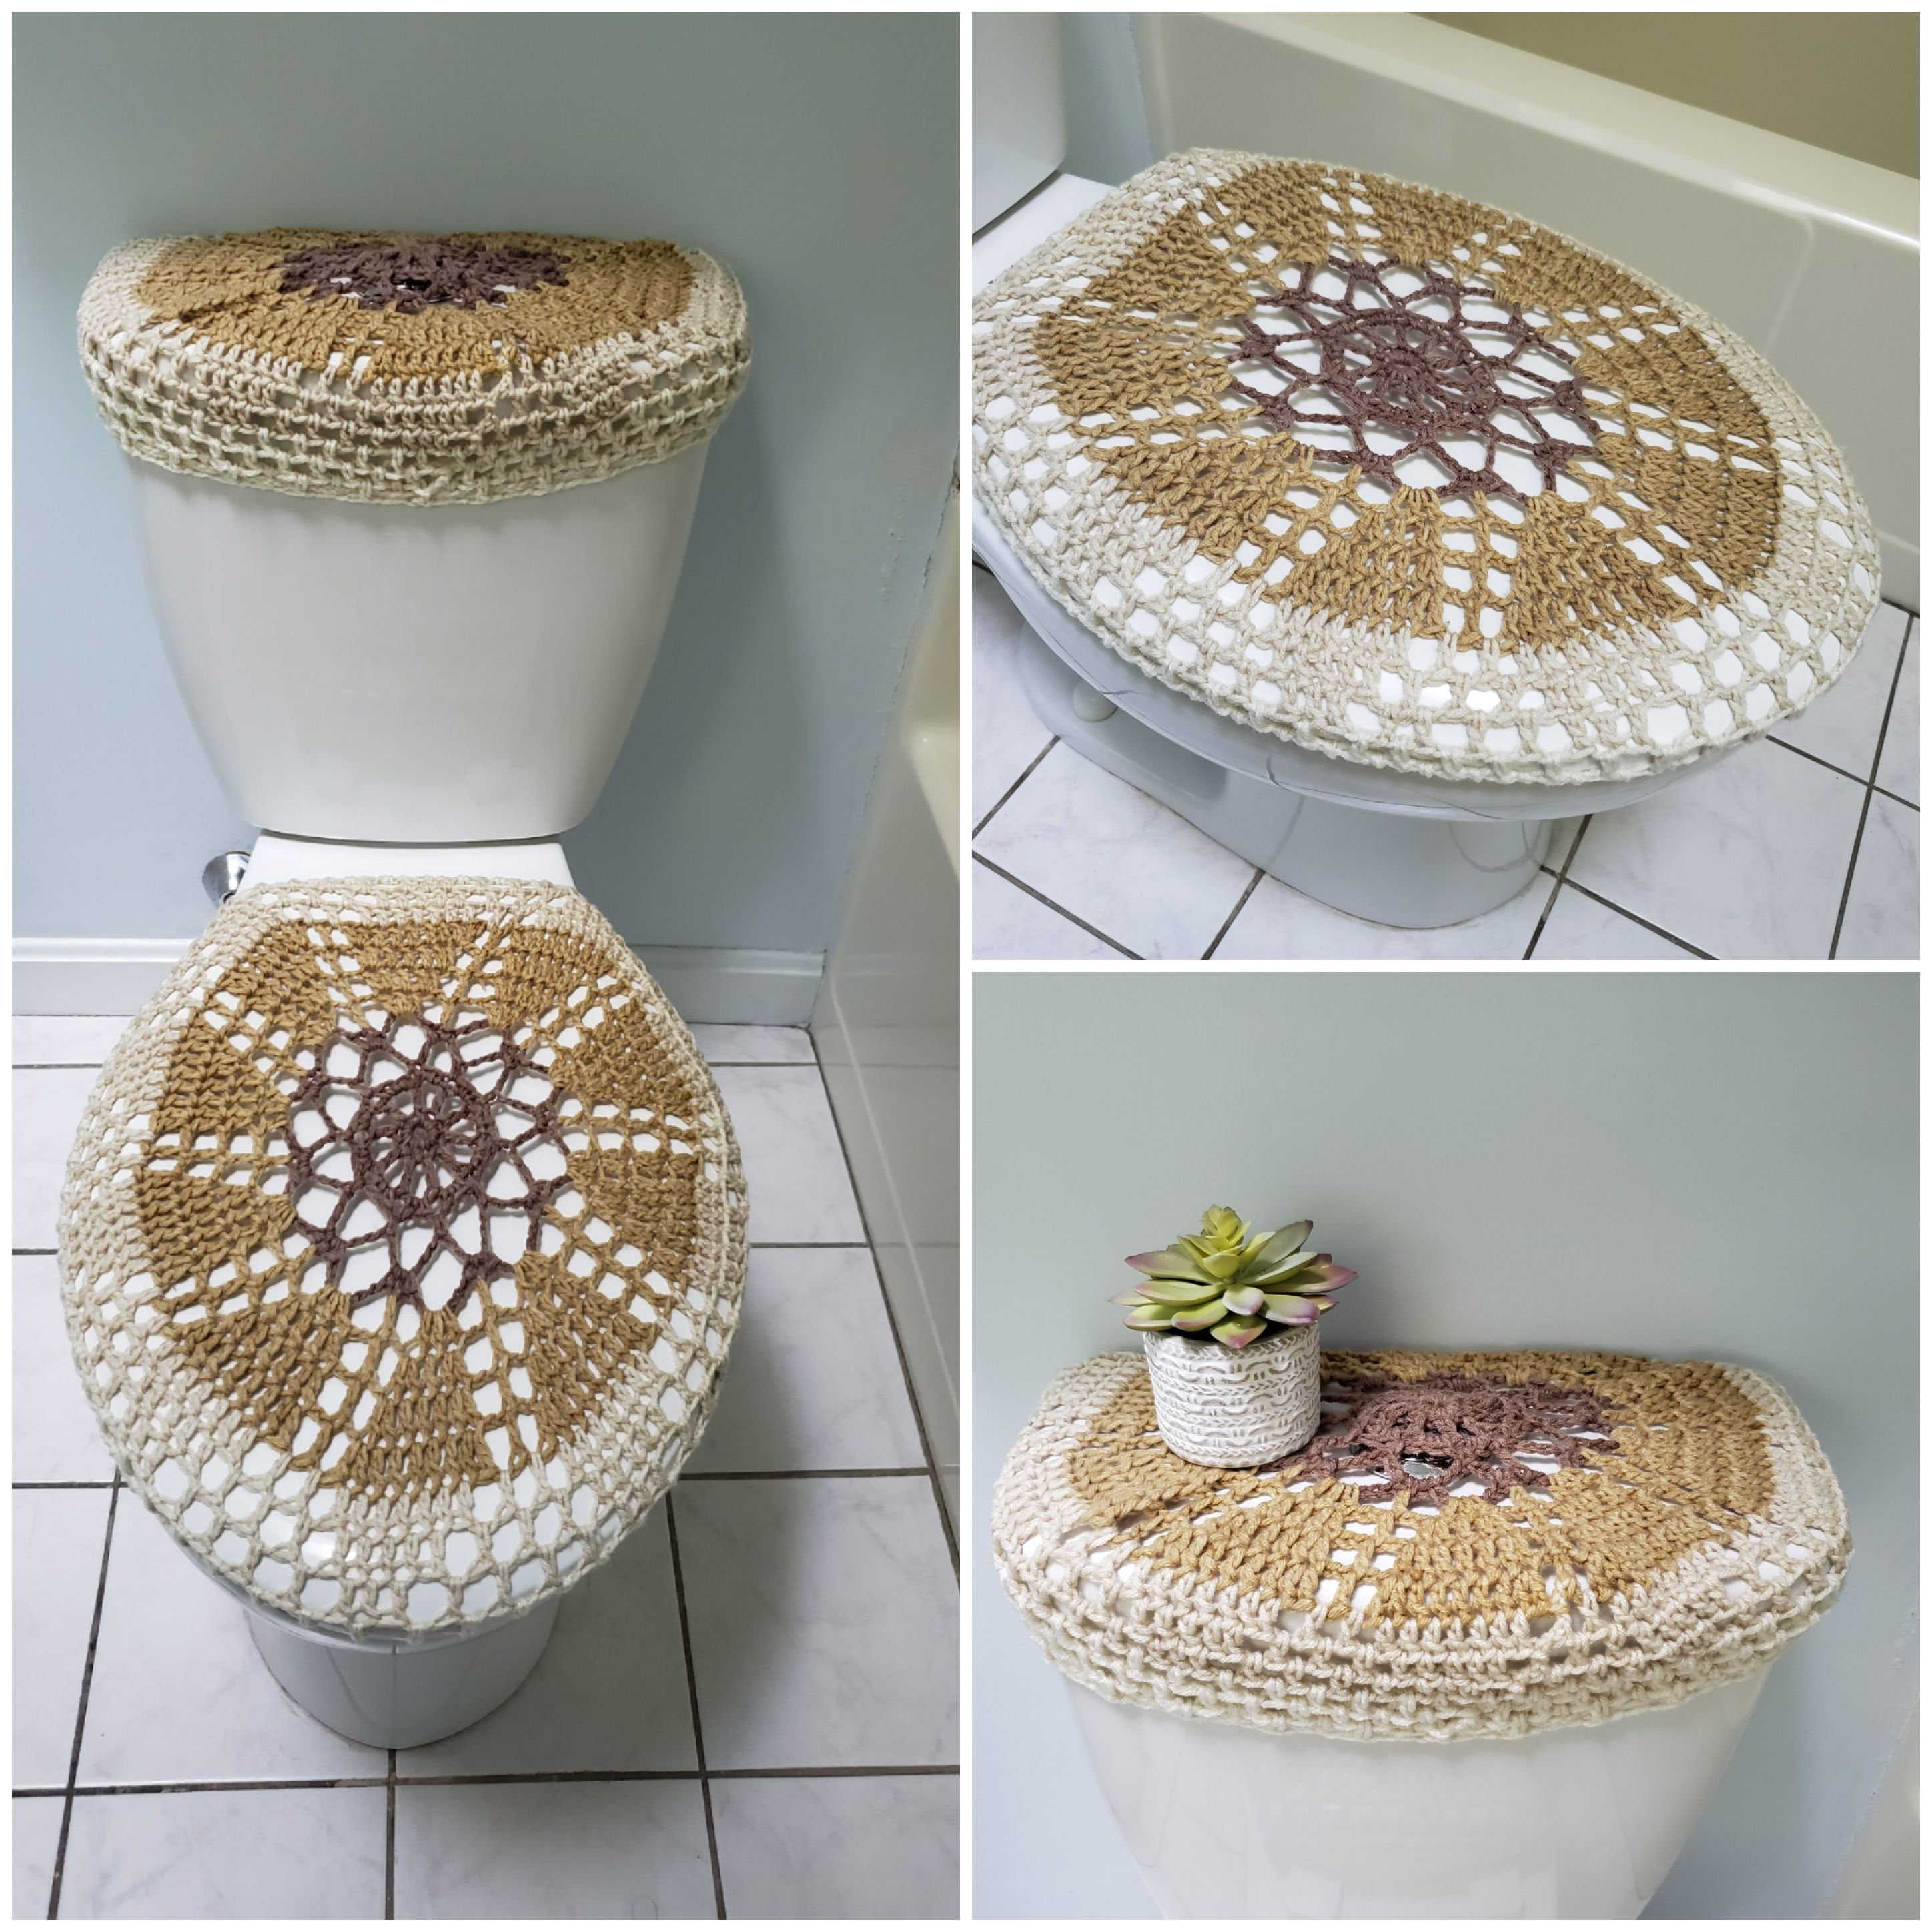 Swell Crochet Tank Lid Cover Or Toilet Seat Cover Brown Light Cjindustries Chair Design For Home Cjindustriesco